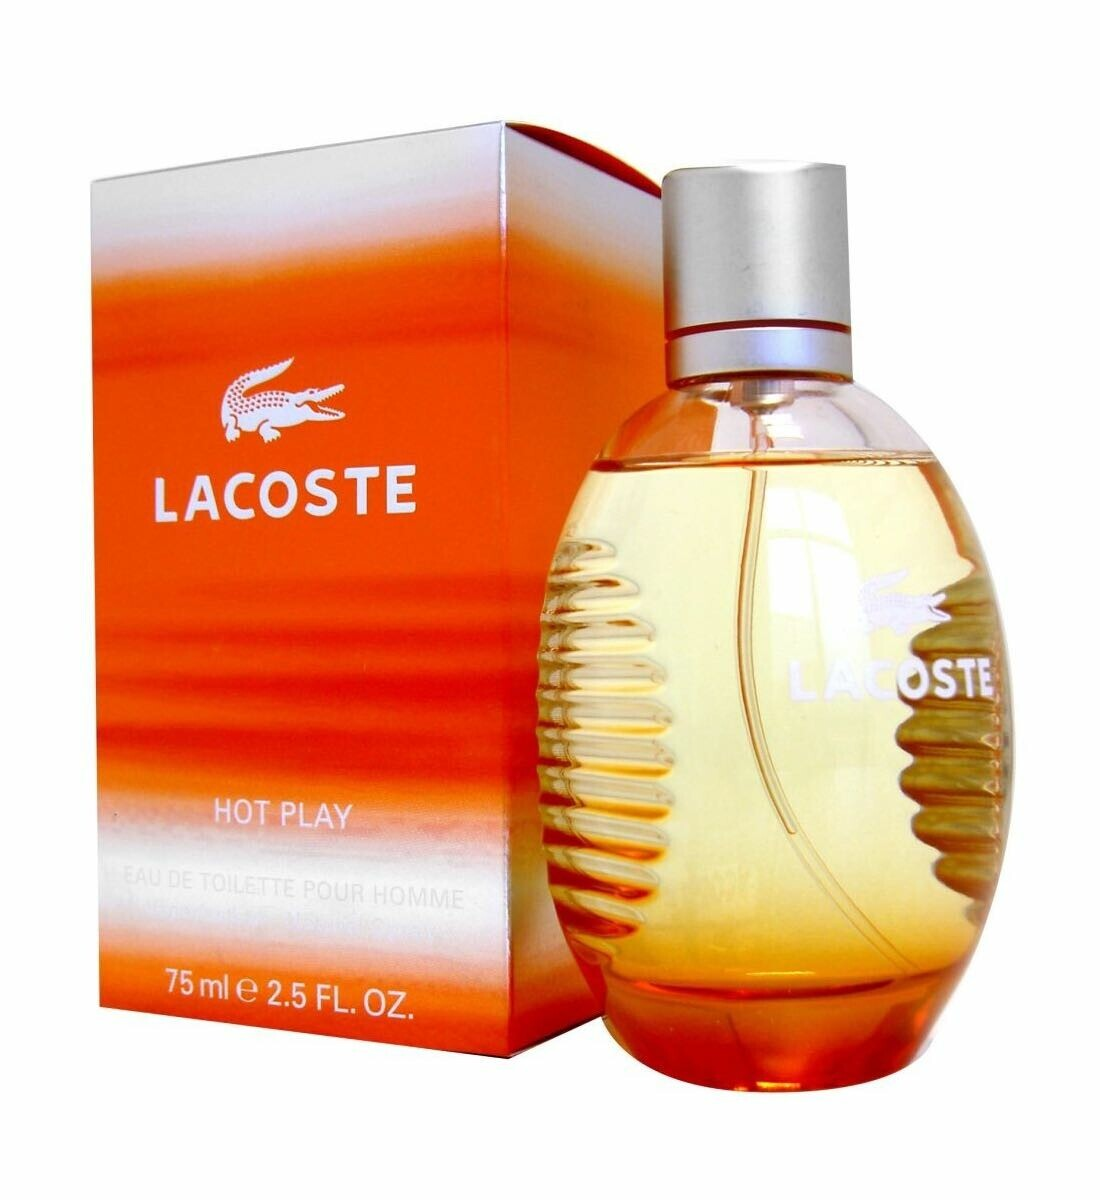 Lacoste Hot Play